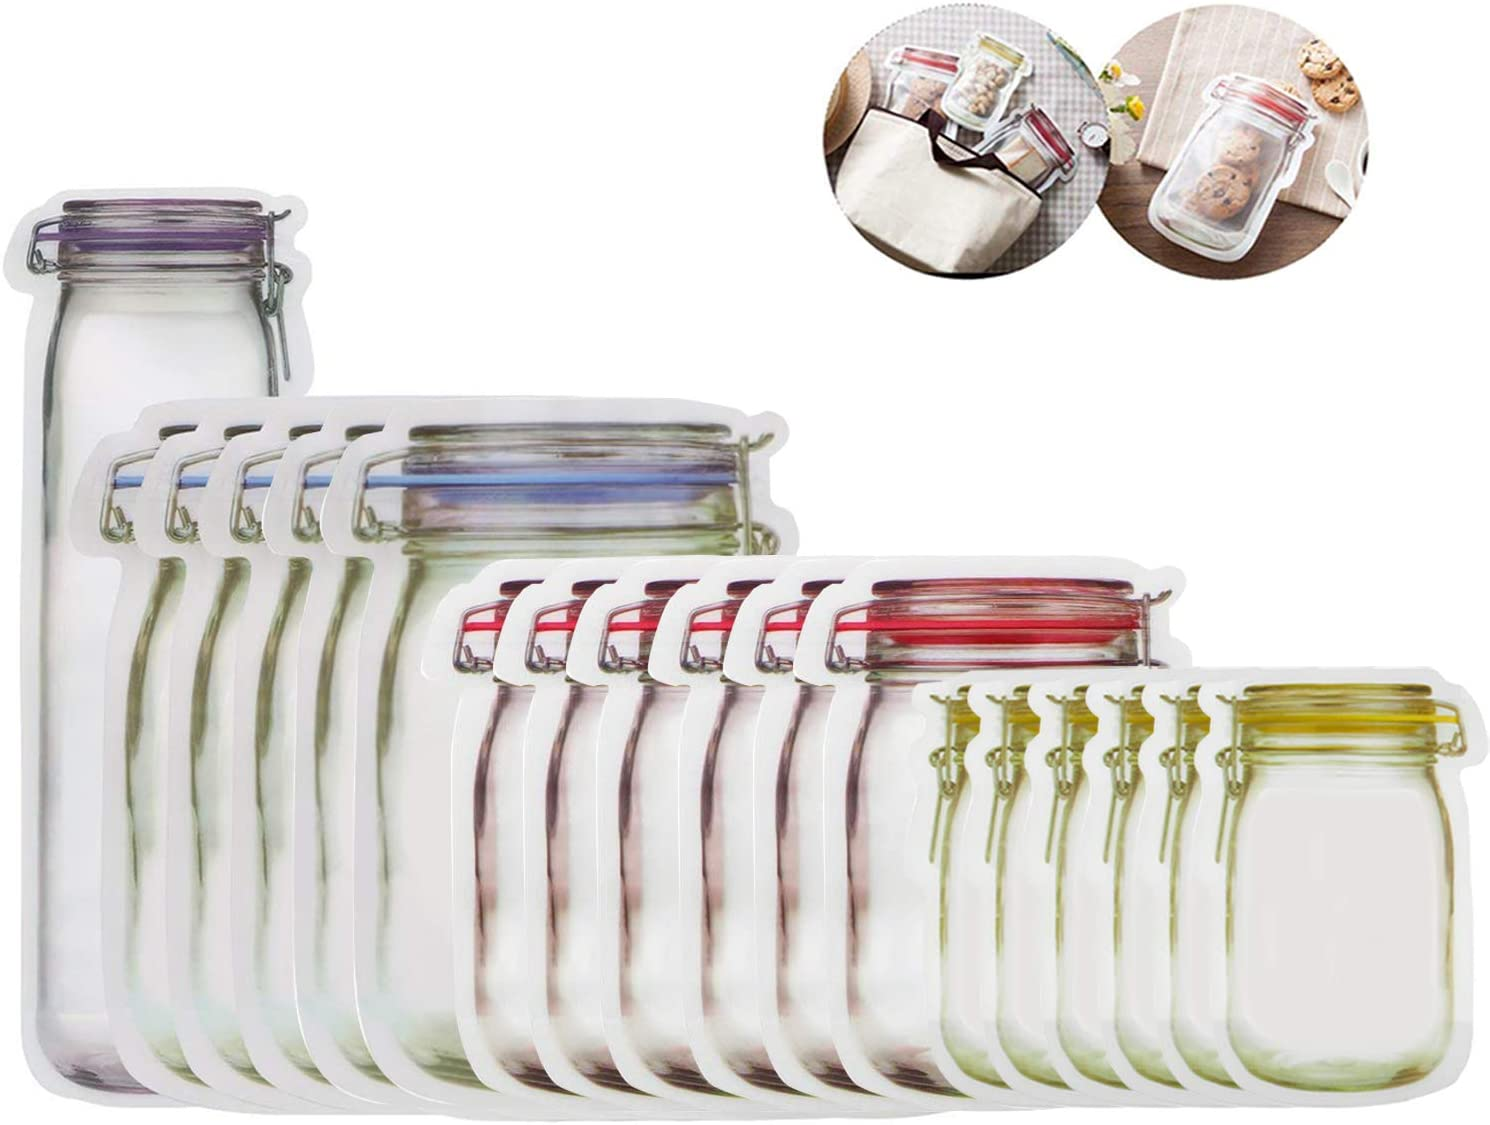 18pcs Mason Jar Zipper Bags,Food Storage Snack Sandwich Ziplock Bags,Reusable Airtight Seal Food Storage Bags,Leakproof Food Saver Bags for Travel Camping and Kids (Tallx1+Lx5+Mx6+Sx6)